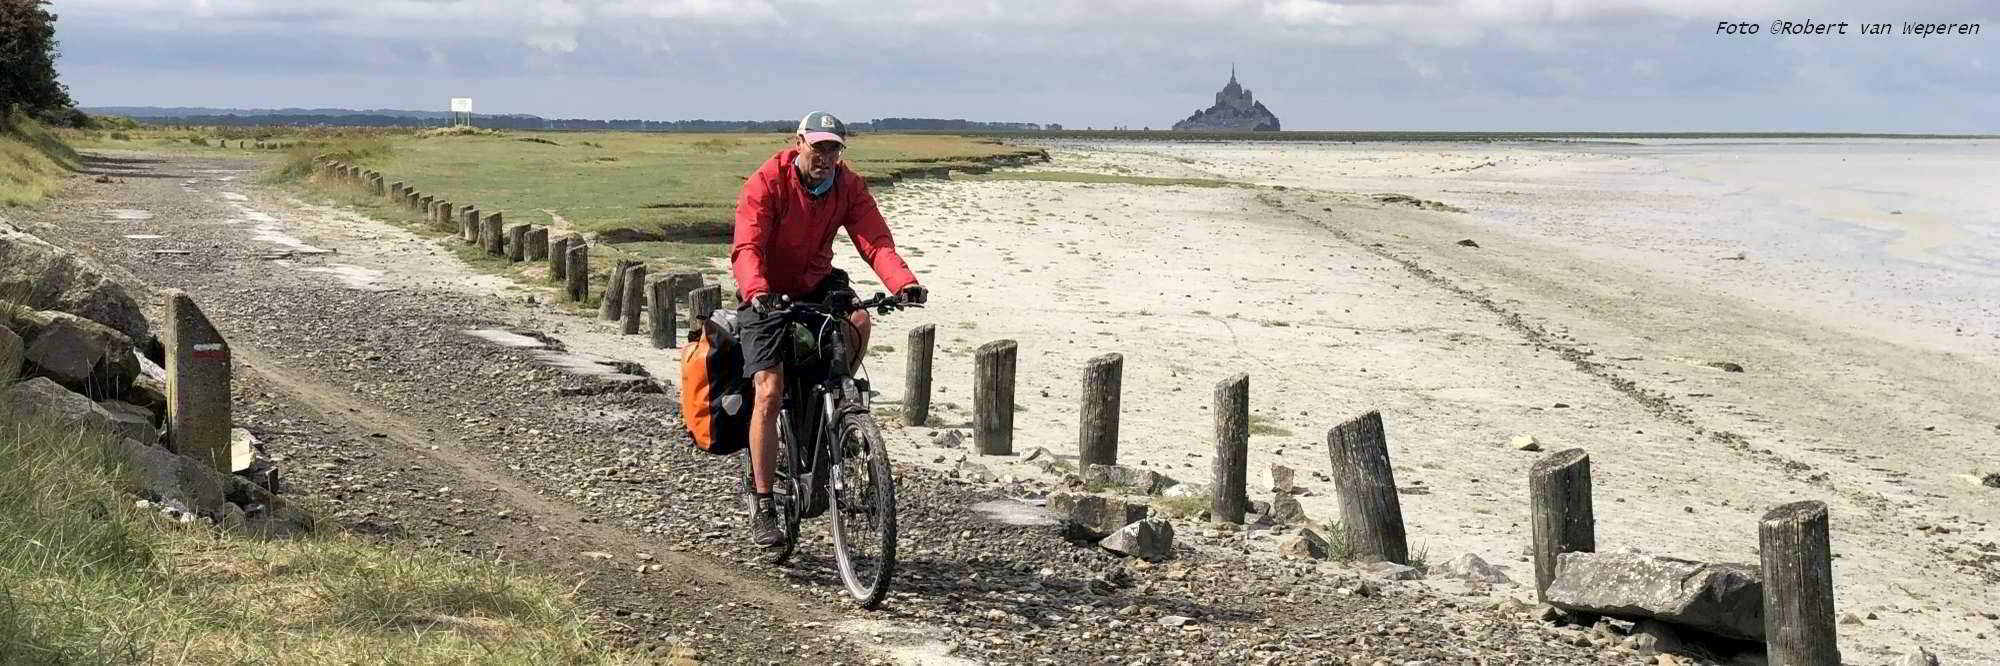 headerfoto-veloscenie-met-mont-saint-michel